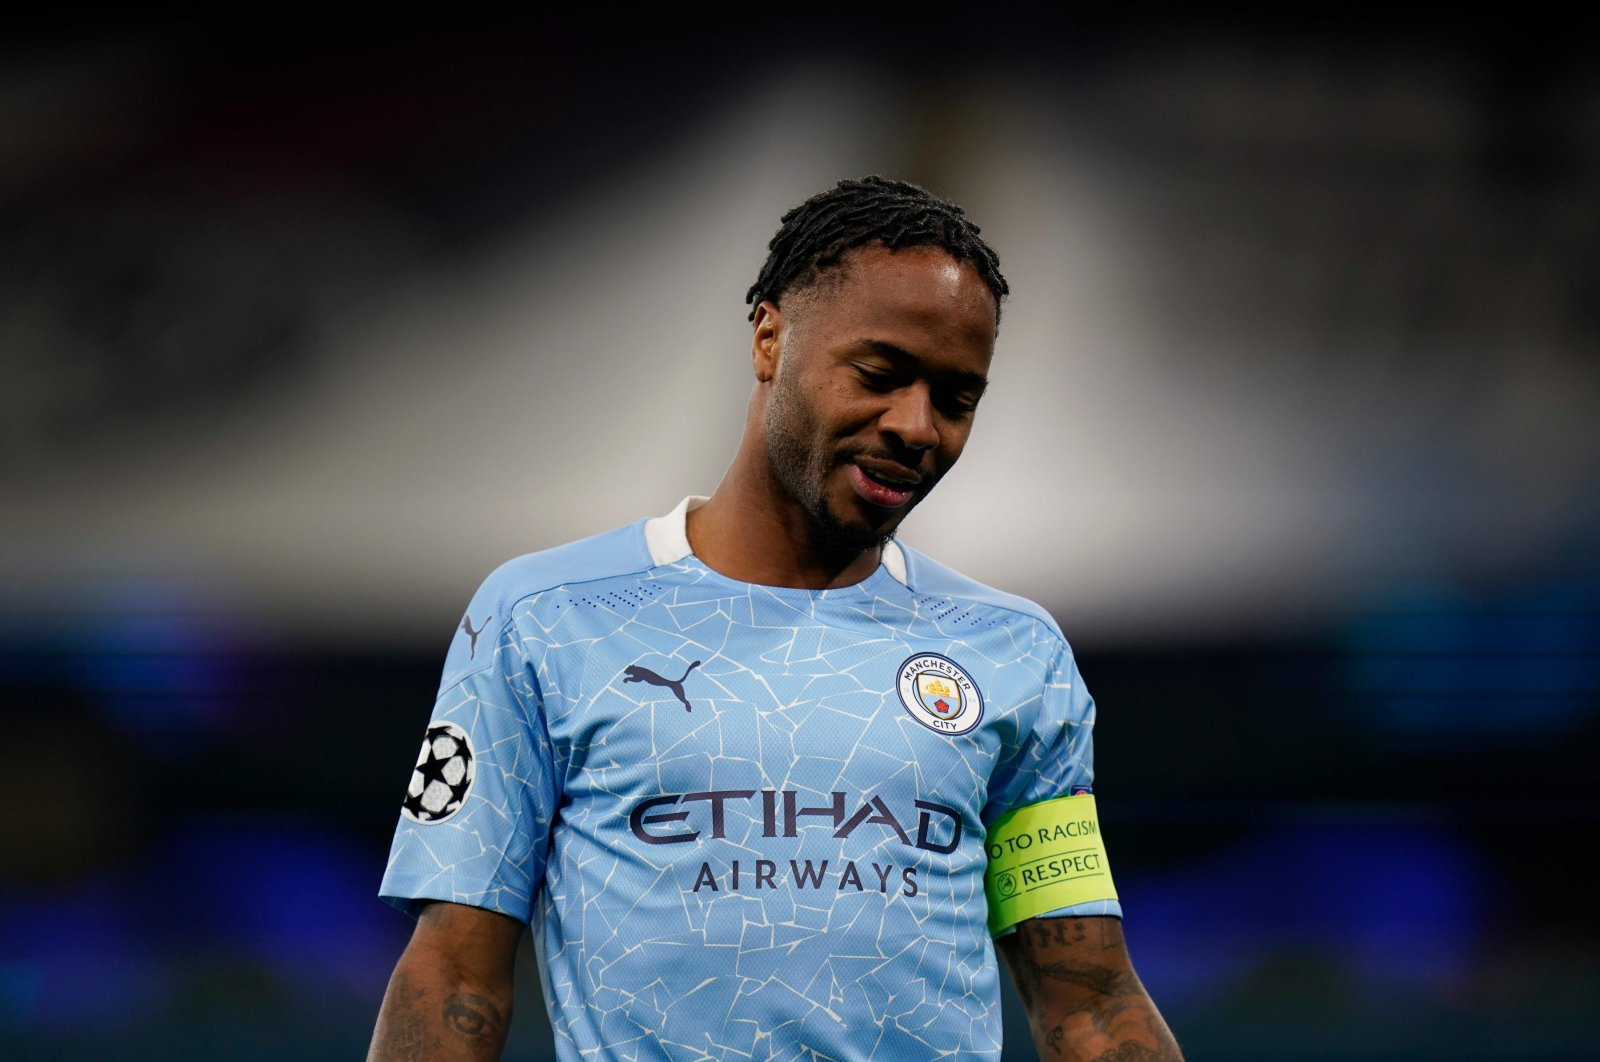 Manchester City's Raheem Sterling reacts during a Champions League match against Porto, in Manchester, England, Oct. 21, 2020. (AFP Photo)